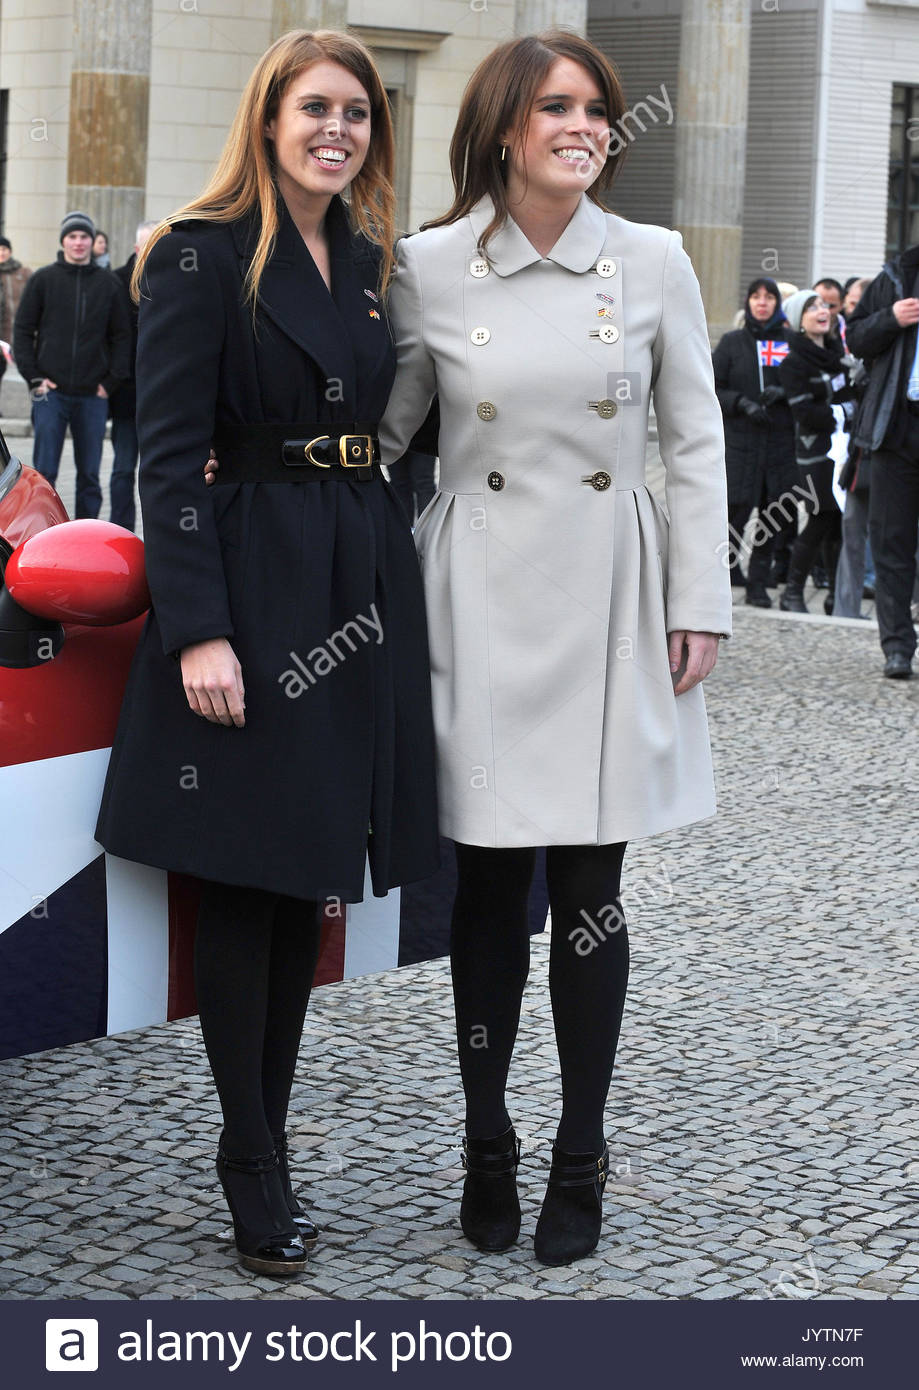 Hrh Princess Beatrice Elizabeth Mary Of York And Hrh